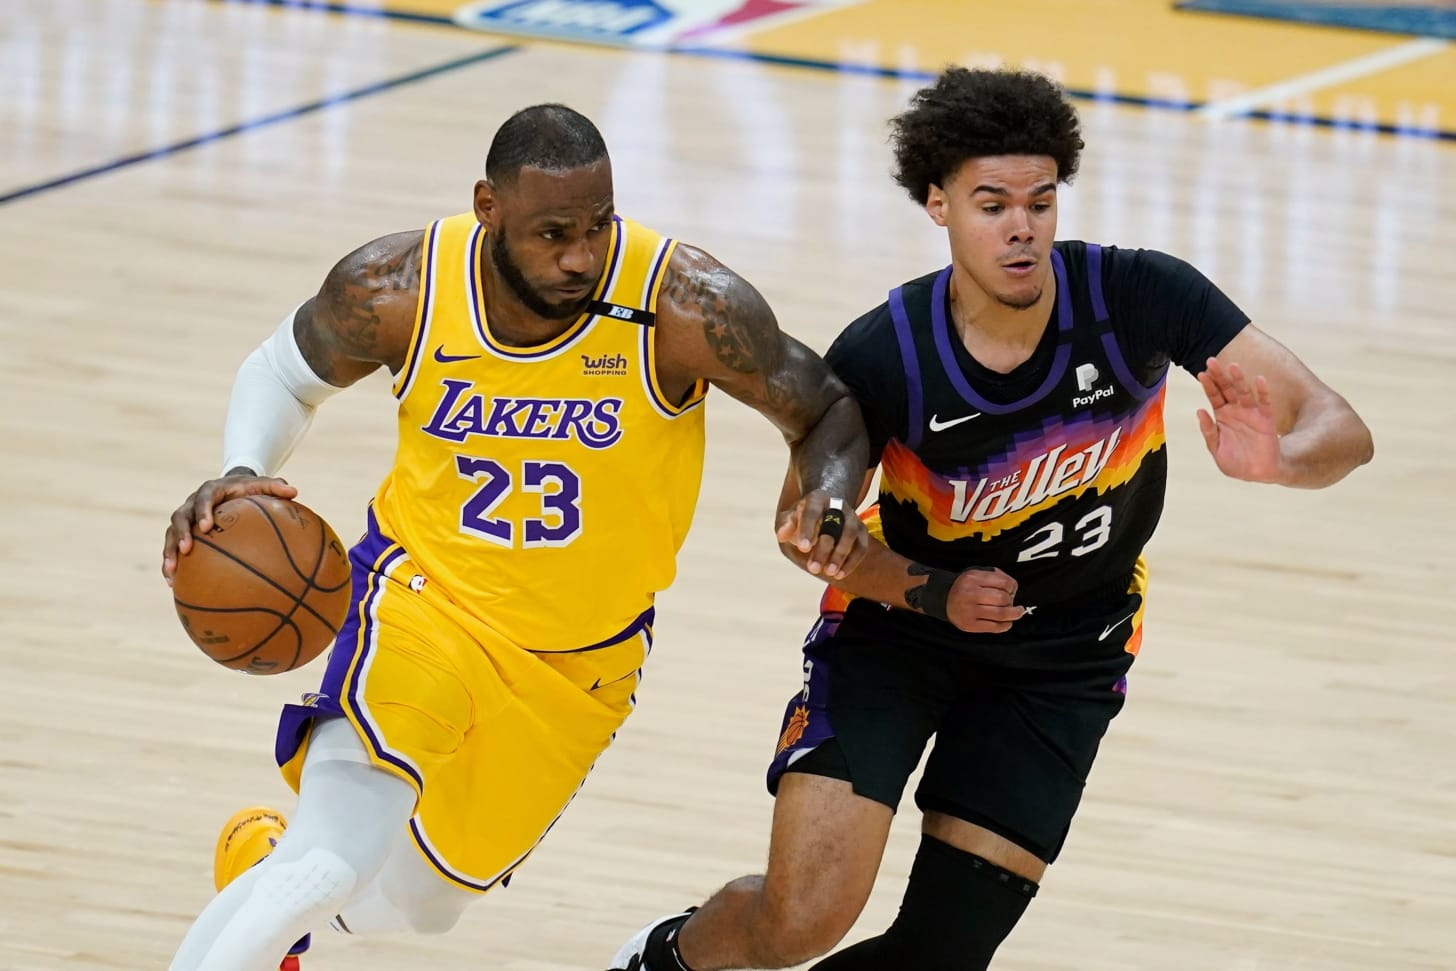 Lakers vs. Suns, Game 3: Best way to stream, how to watch LeBron James,  Devin Booker in 2021 NBA Playoffs - masslive.com